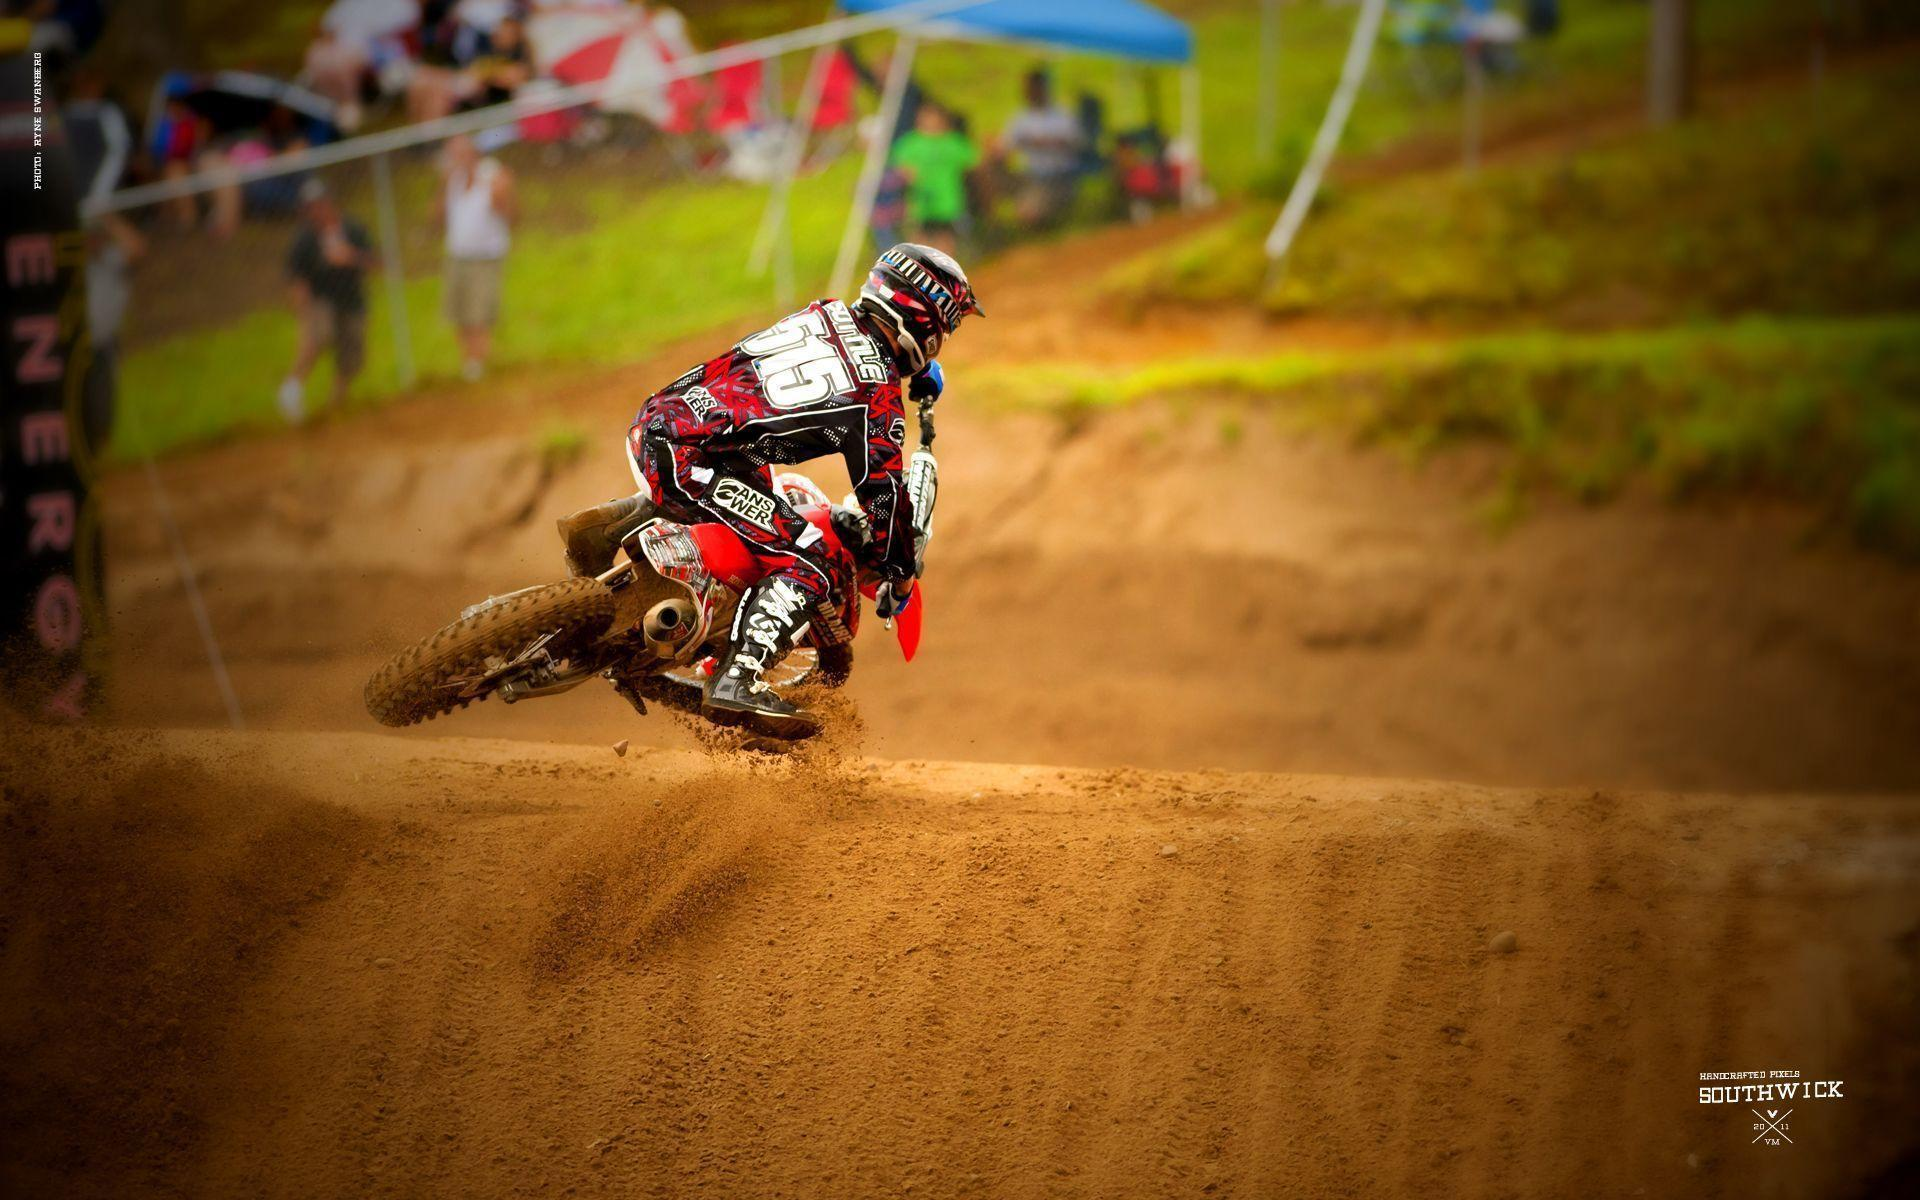 Motocross Wallpapers 2016 Wallpaper Cave HD Wallpapers Download Free Images Wallpaper [1000image.com]